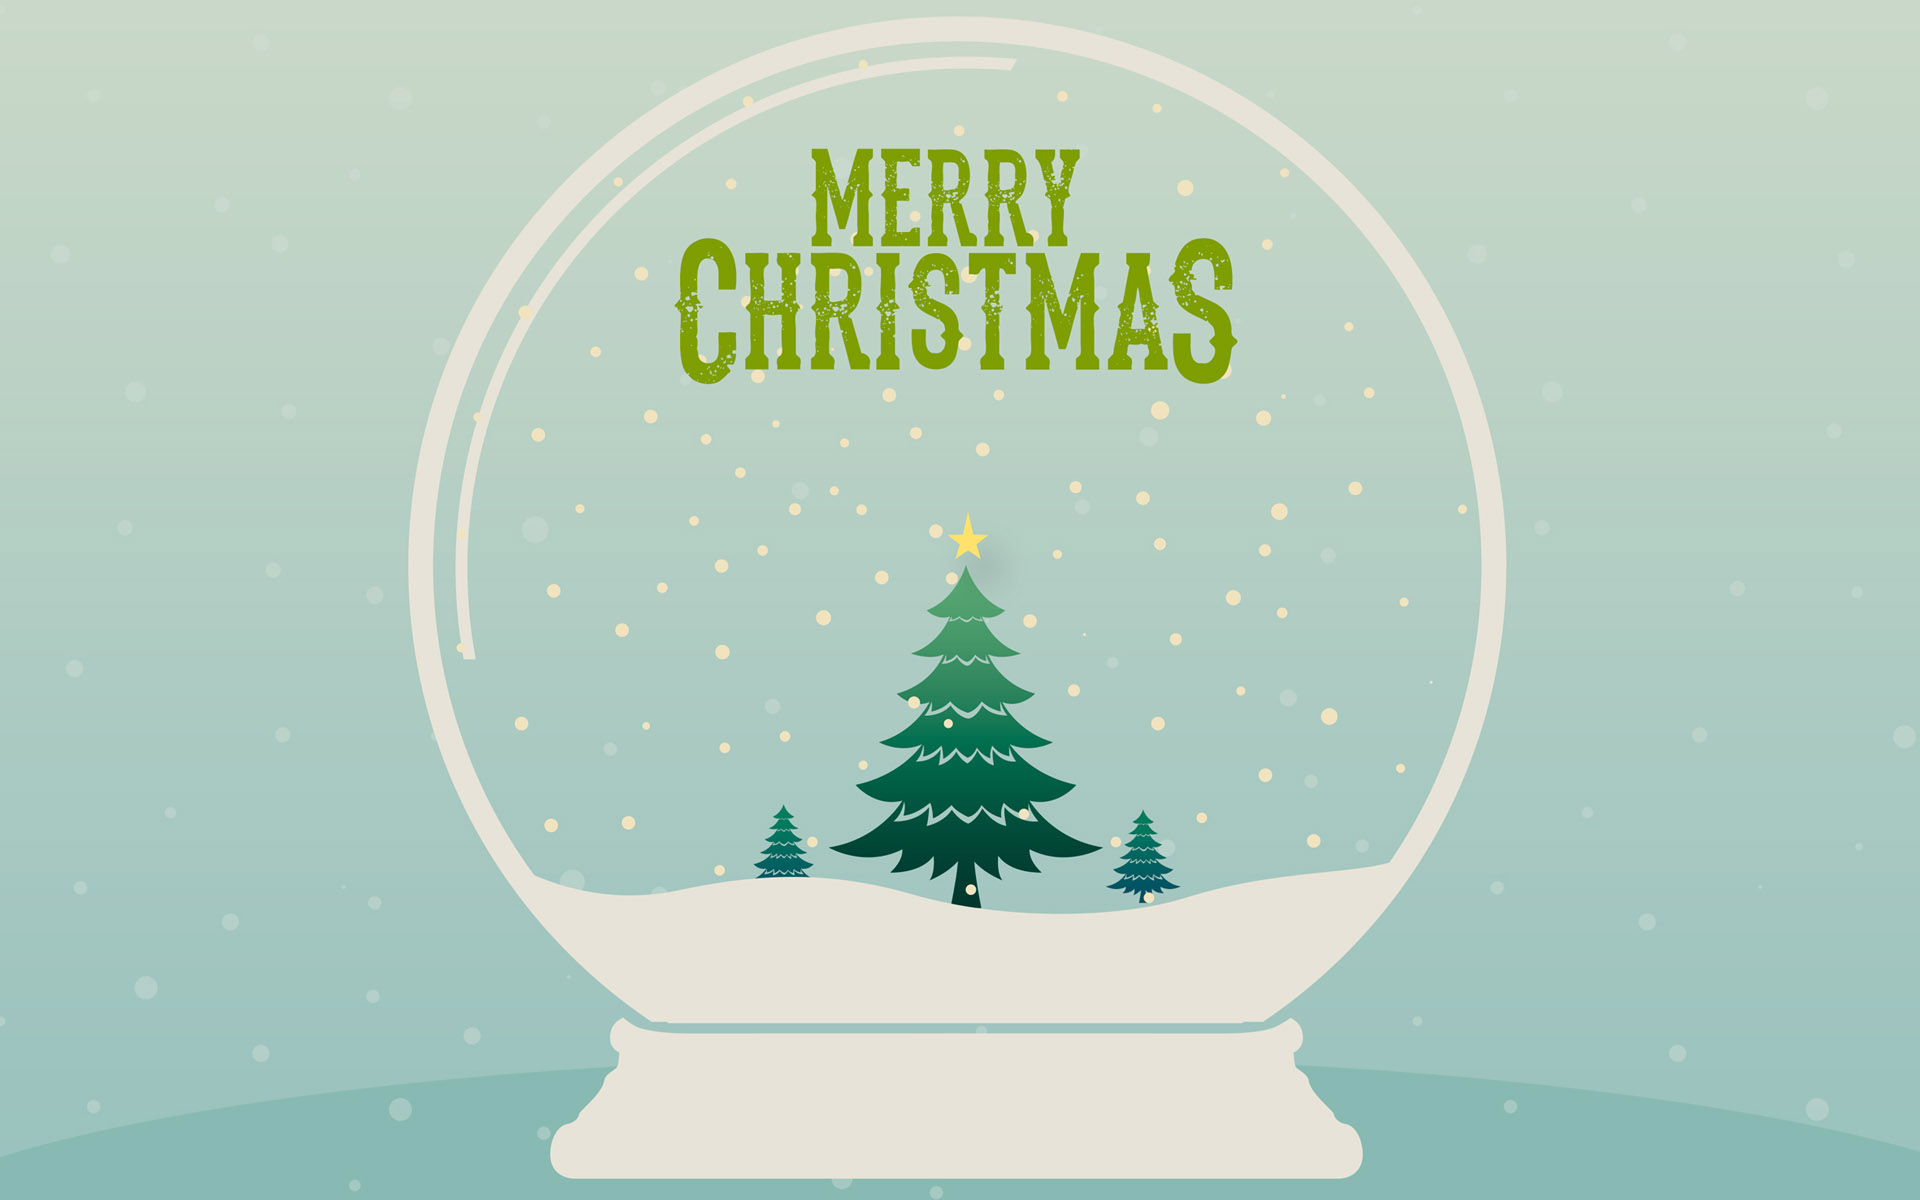 Merry Christmas Wallpaper 2015